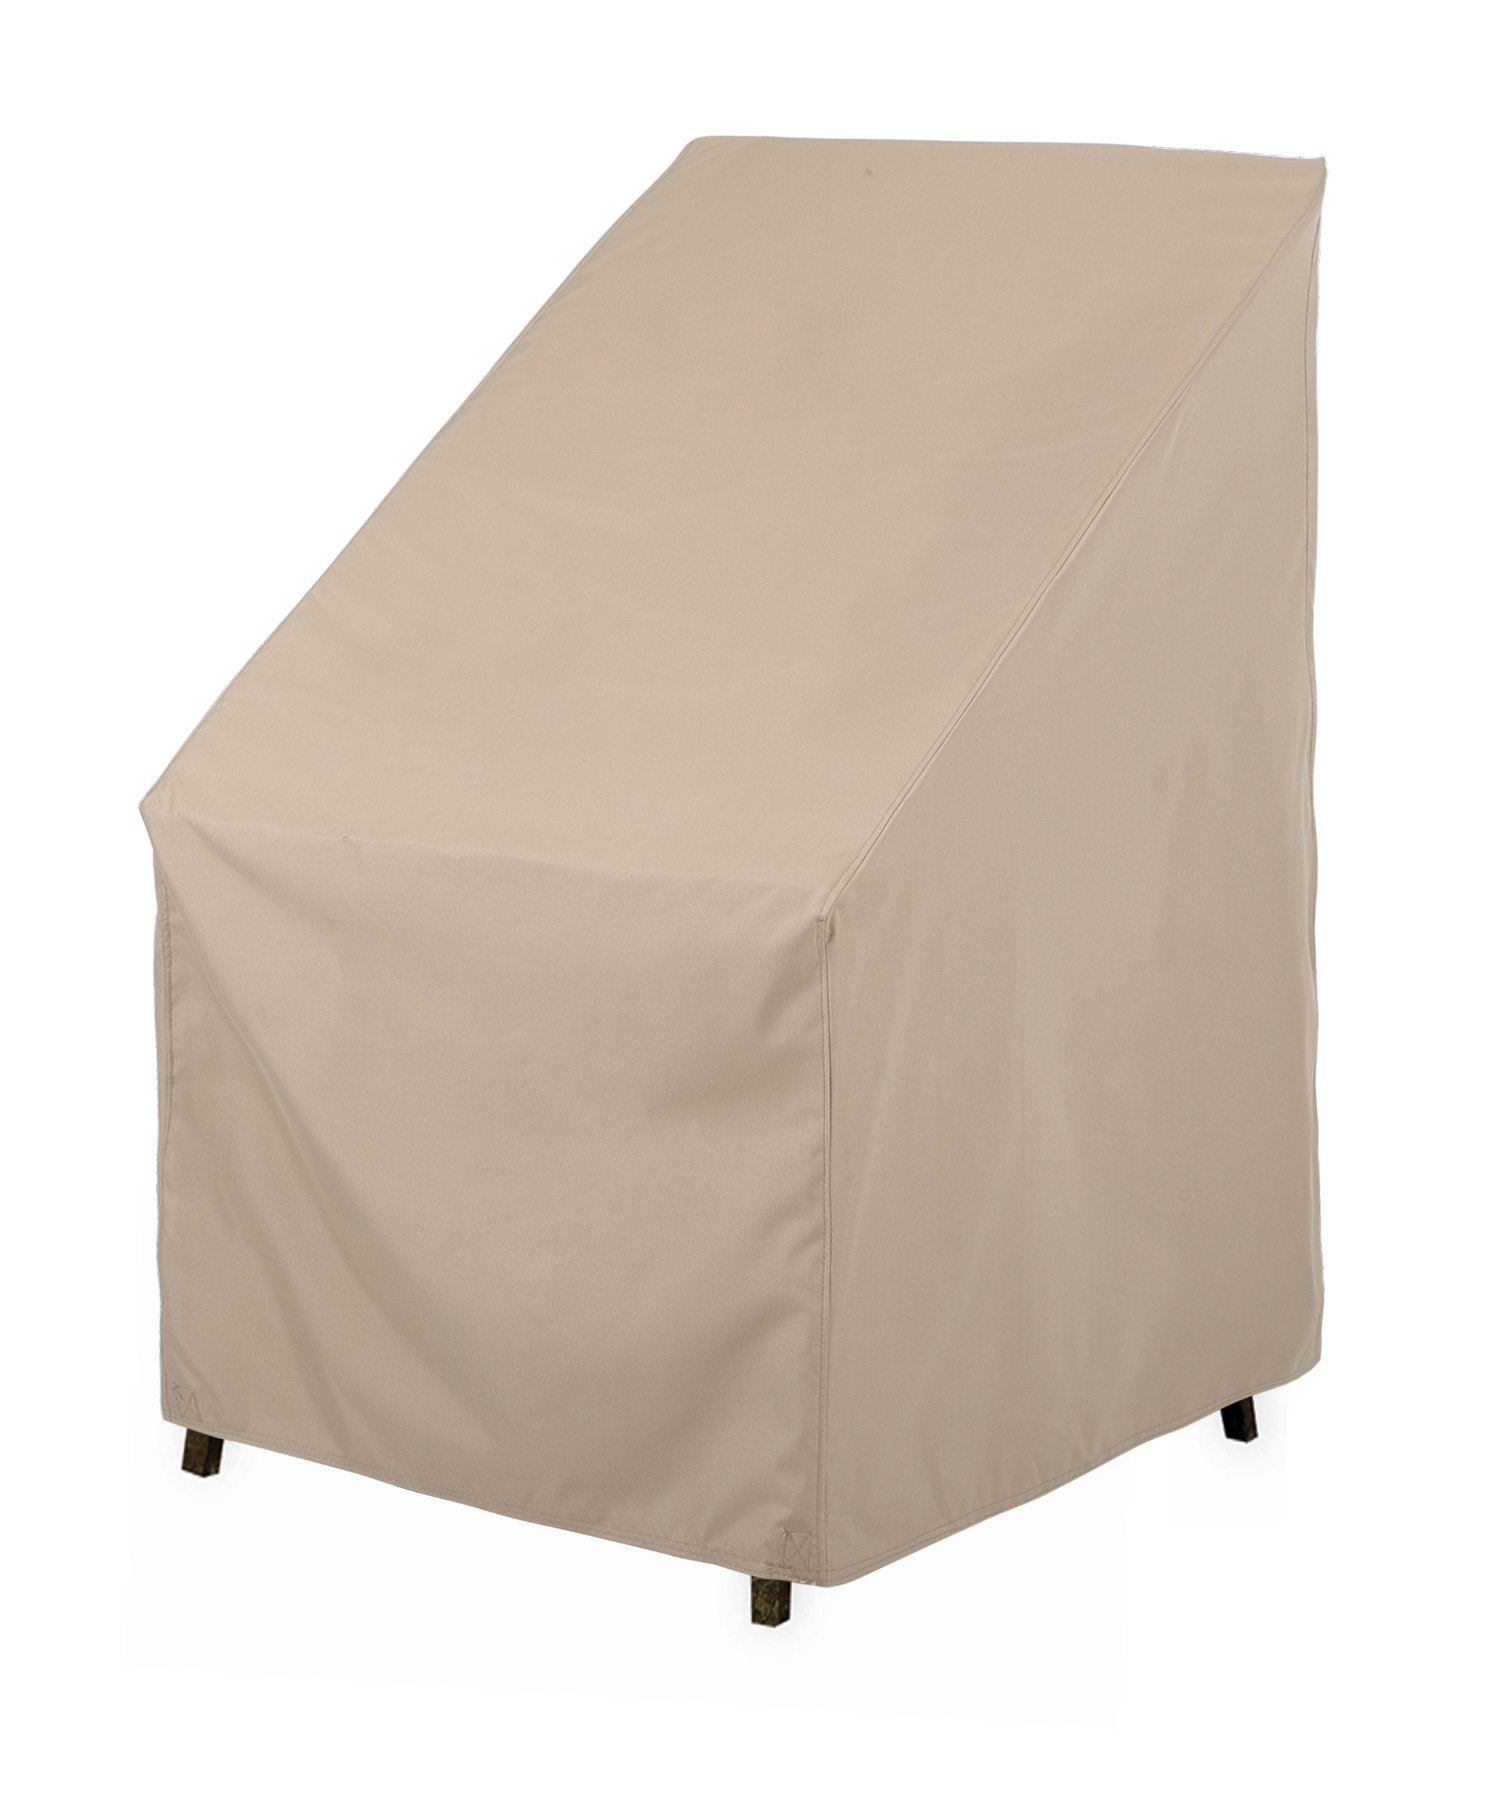 SunPatio Outdoor High Back Chair Cover, Lightweight, Water Resistant, Eco-Friendly, Helpful Air Vent, All Weather Protection, Beige, 27'' L x 30'' W x 42'' H by SunPatio